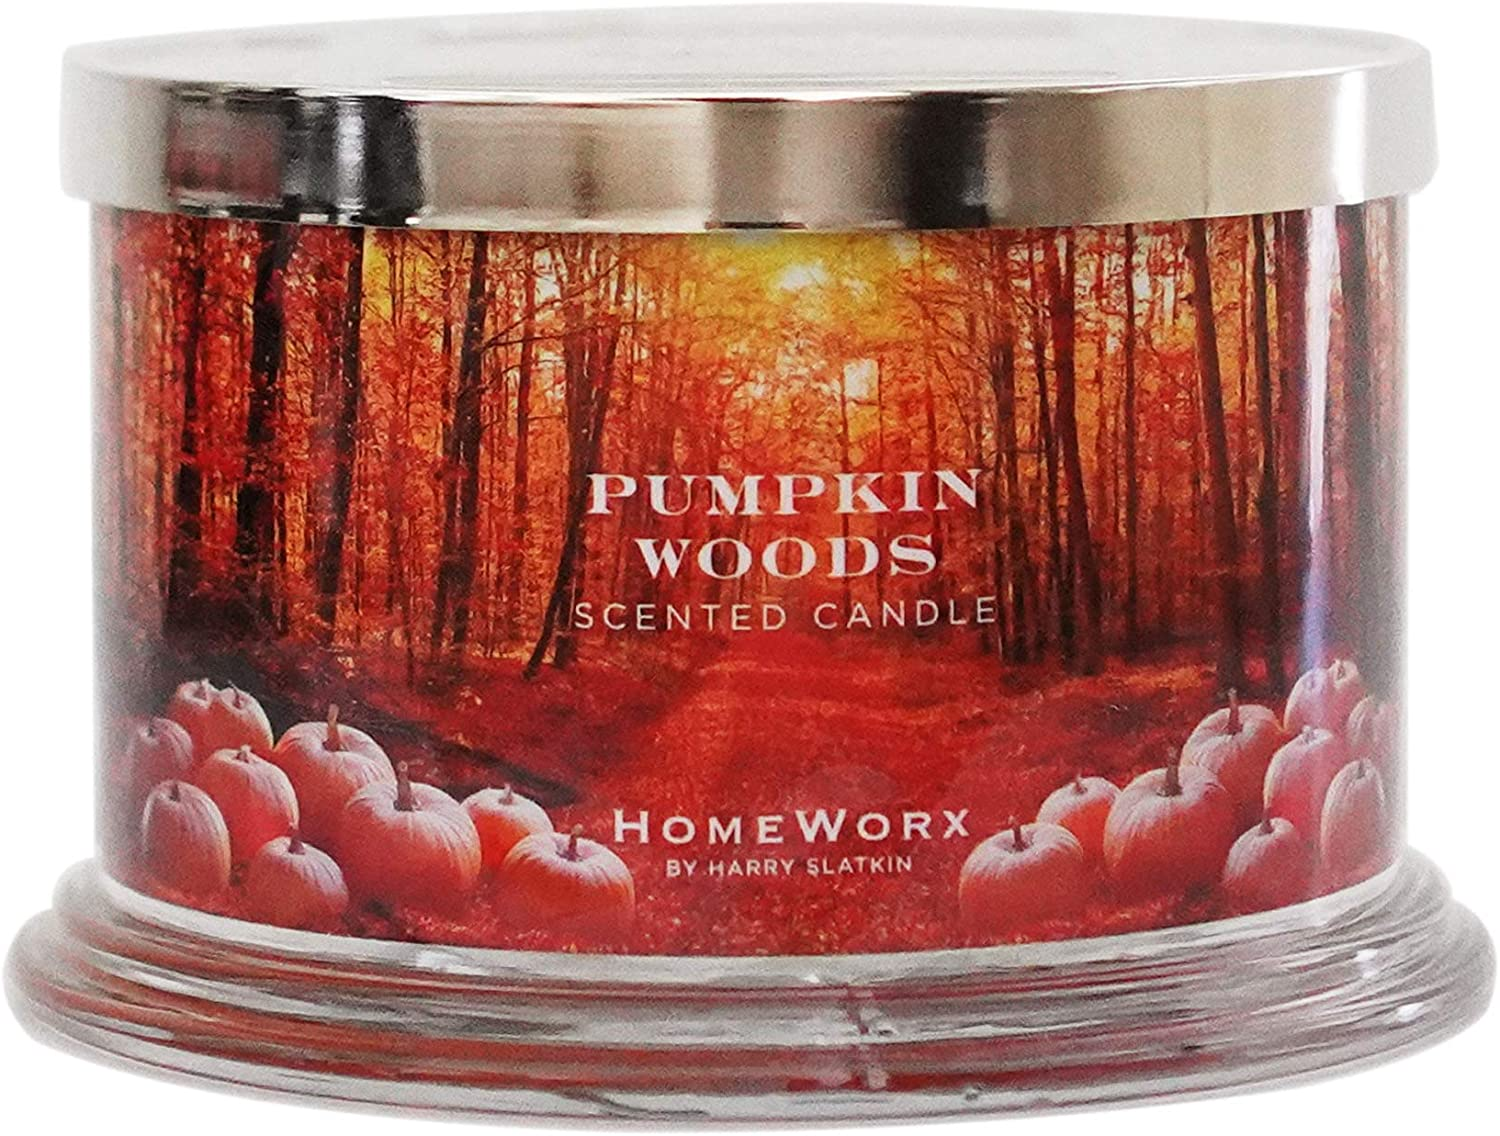 HomeWorx by Harry Slatkin 4 Wick Candle, 18 oz, Pumpkin Woods Multicolor, 18 oz.